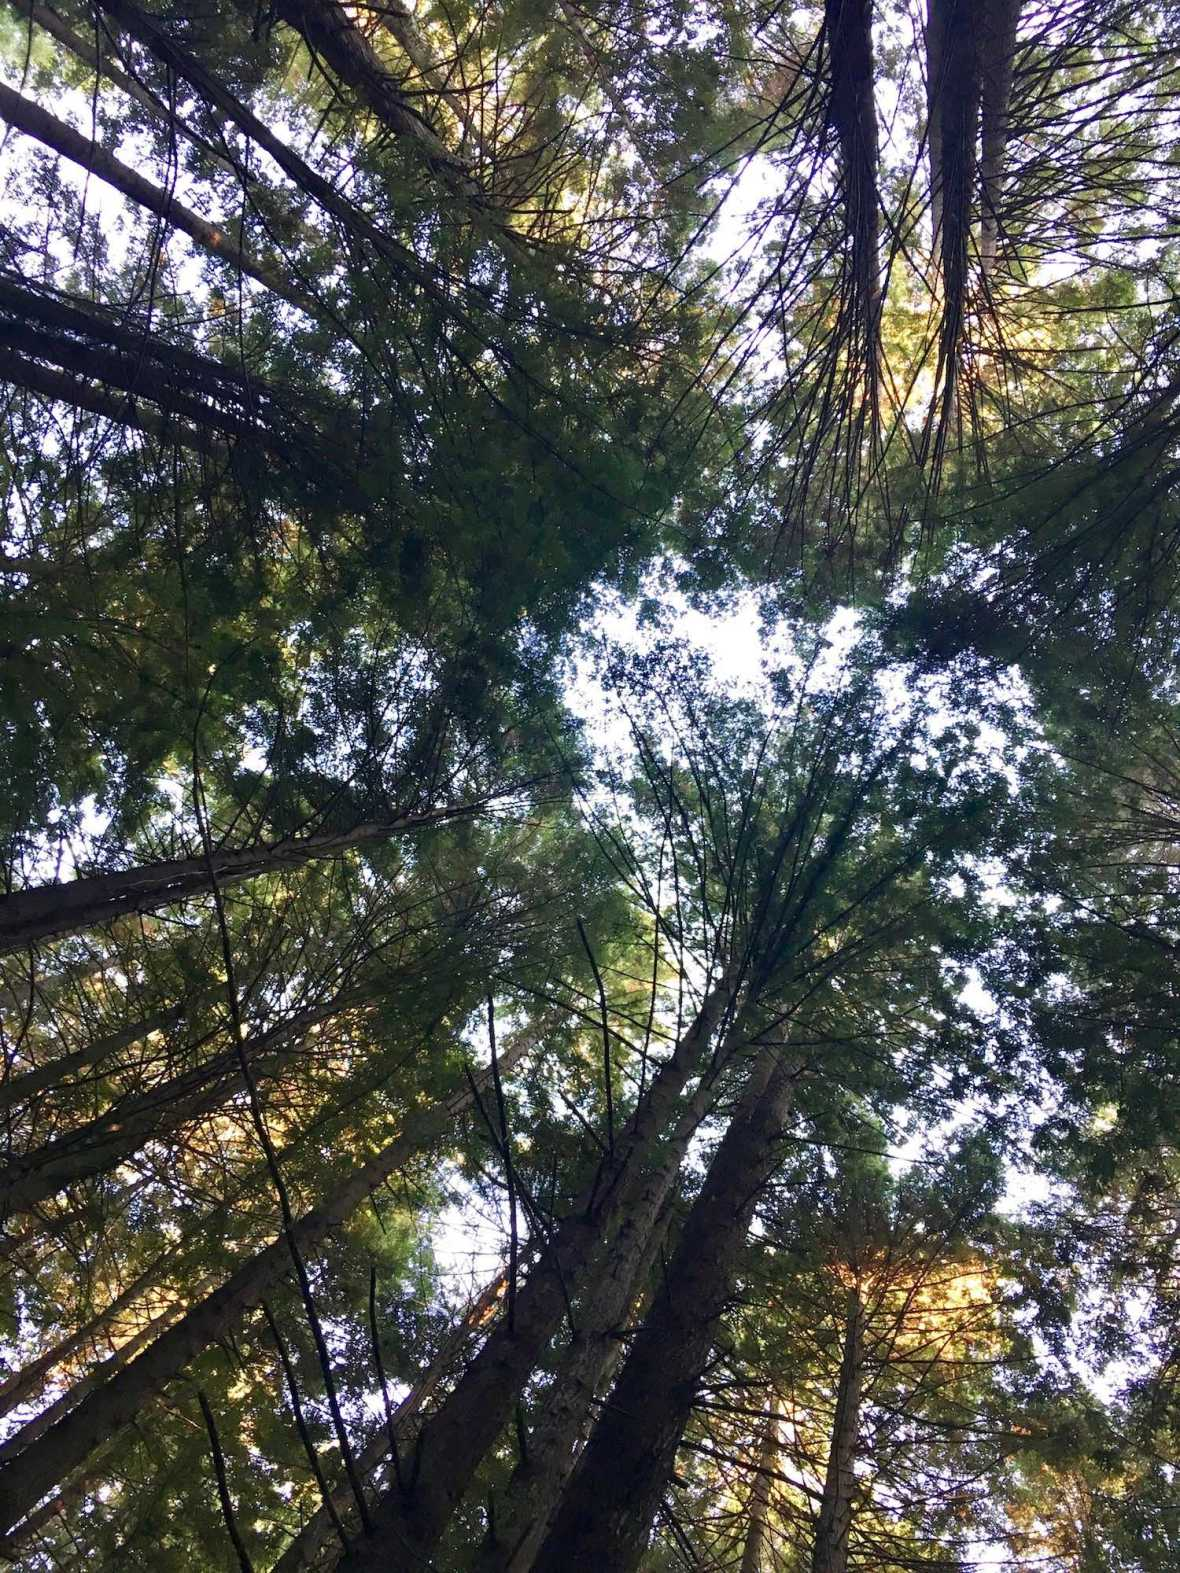 Camping in tall redwood forest at the Crescent City / Redwoods KOA